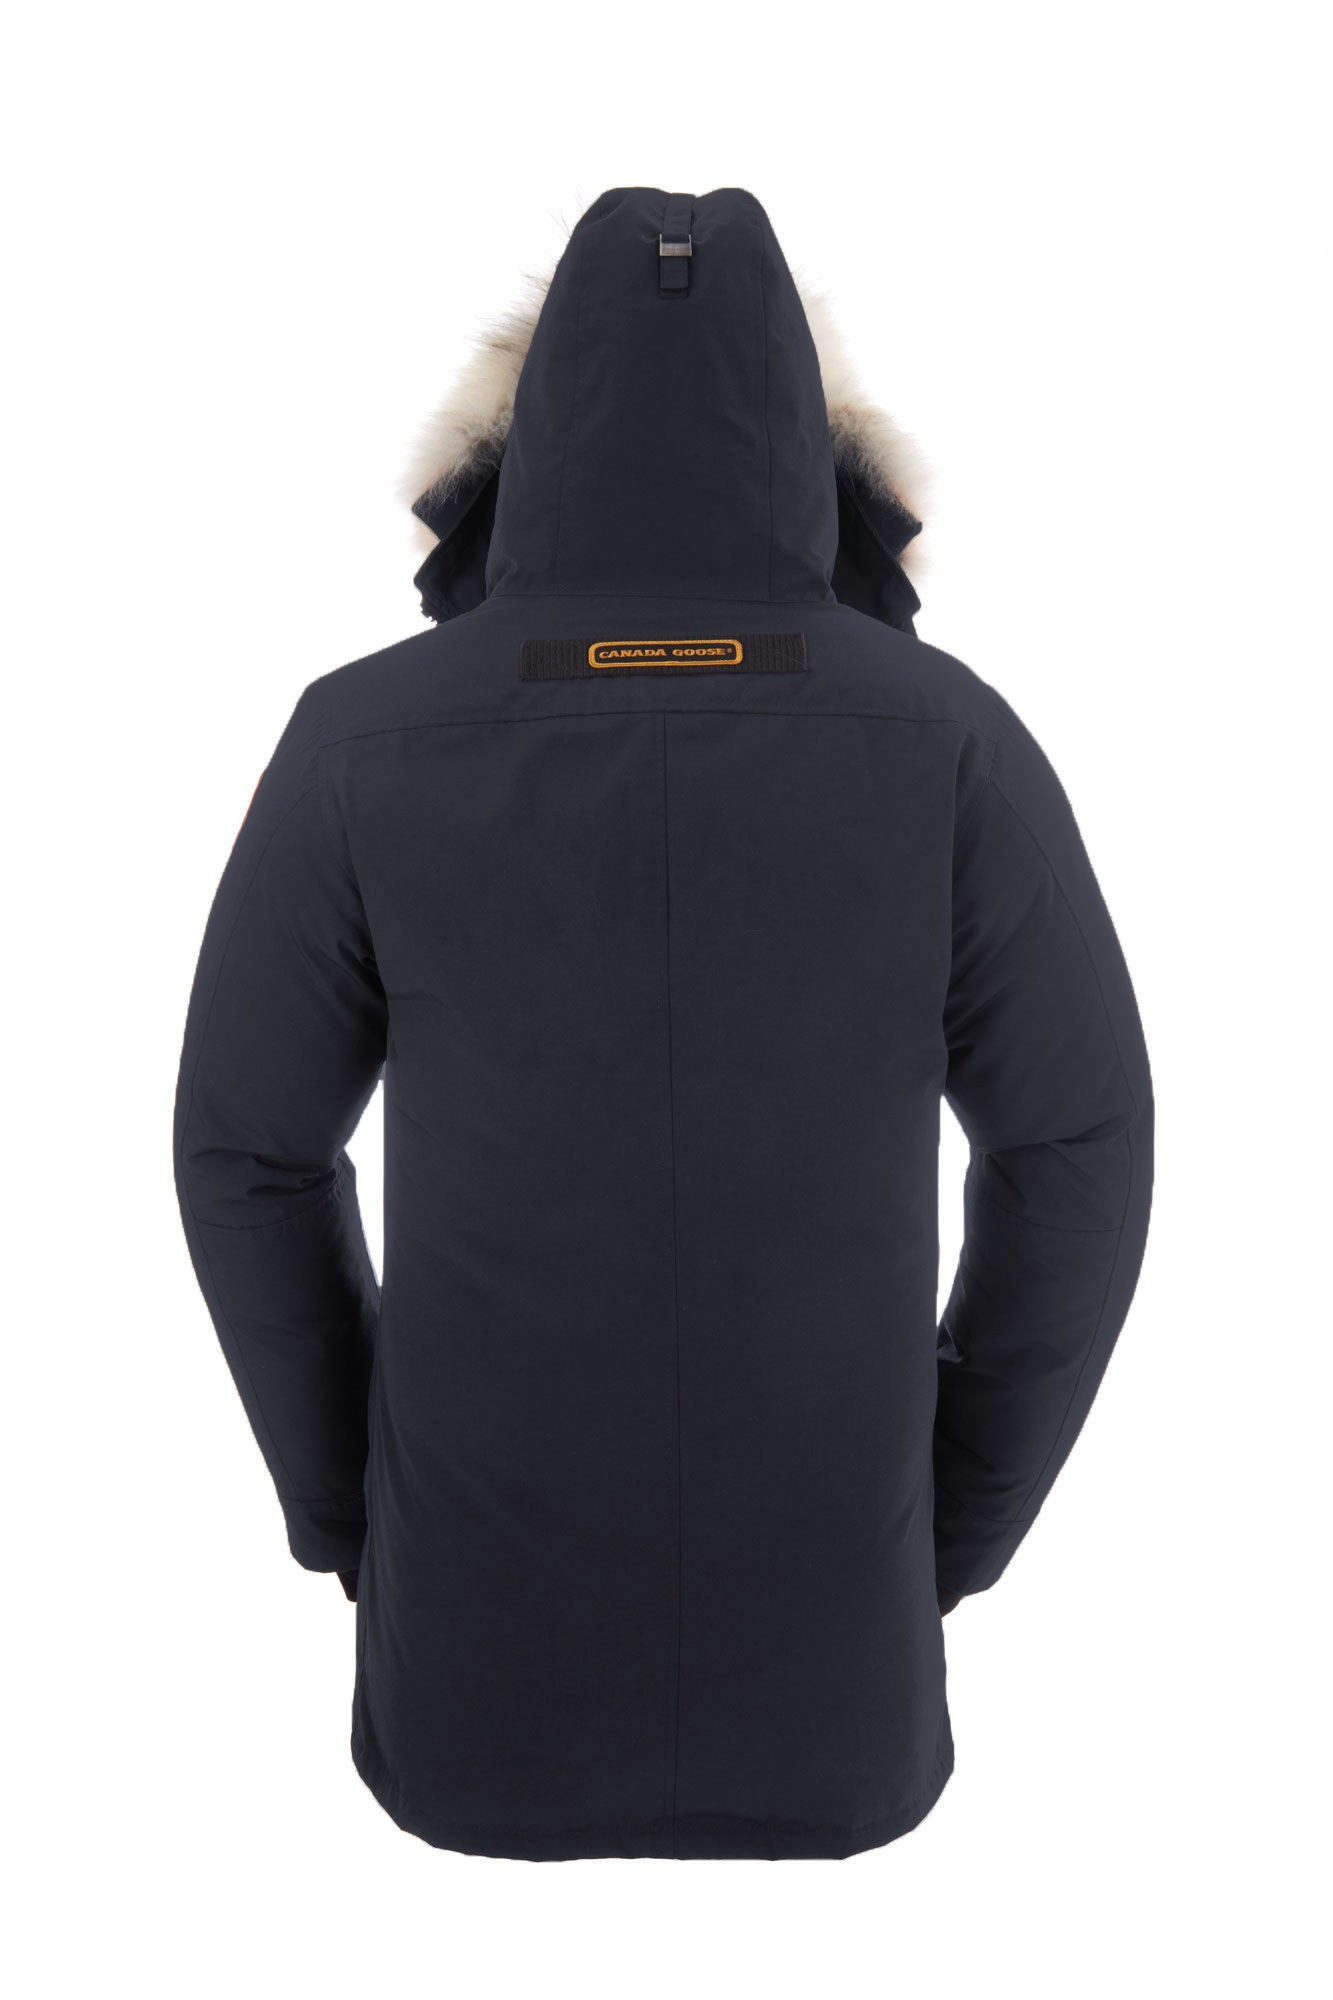 52430e18a7e7 CANADA GOOSE CHATEAU PARKA MEN Spirit 3426M. Be the first to review this  product